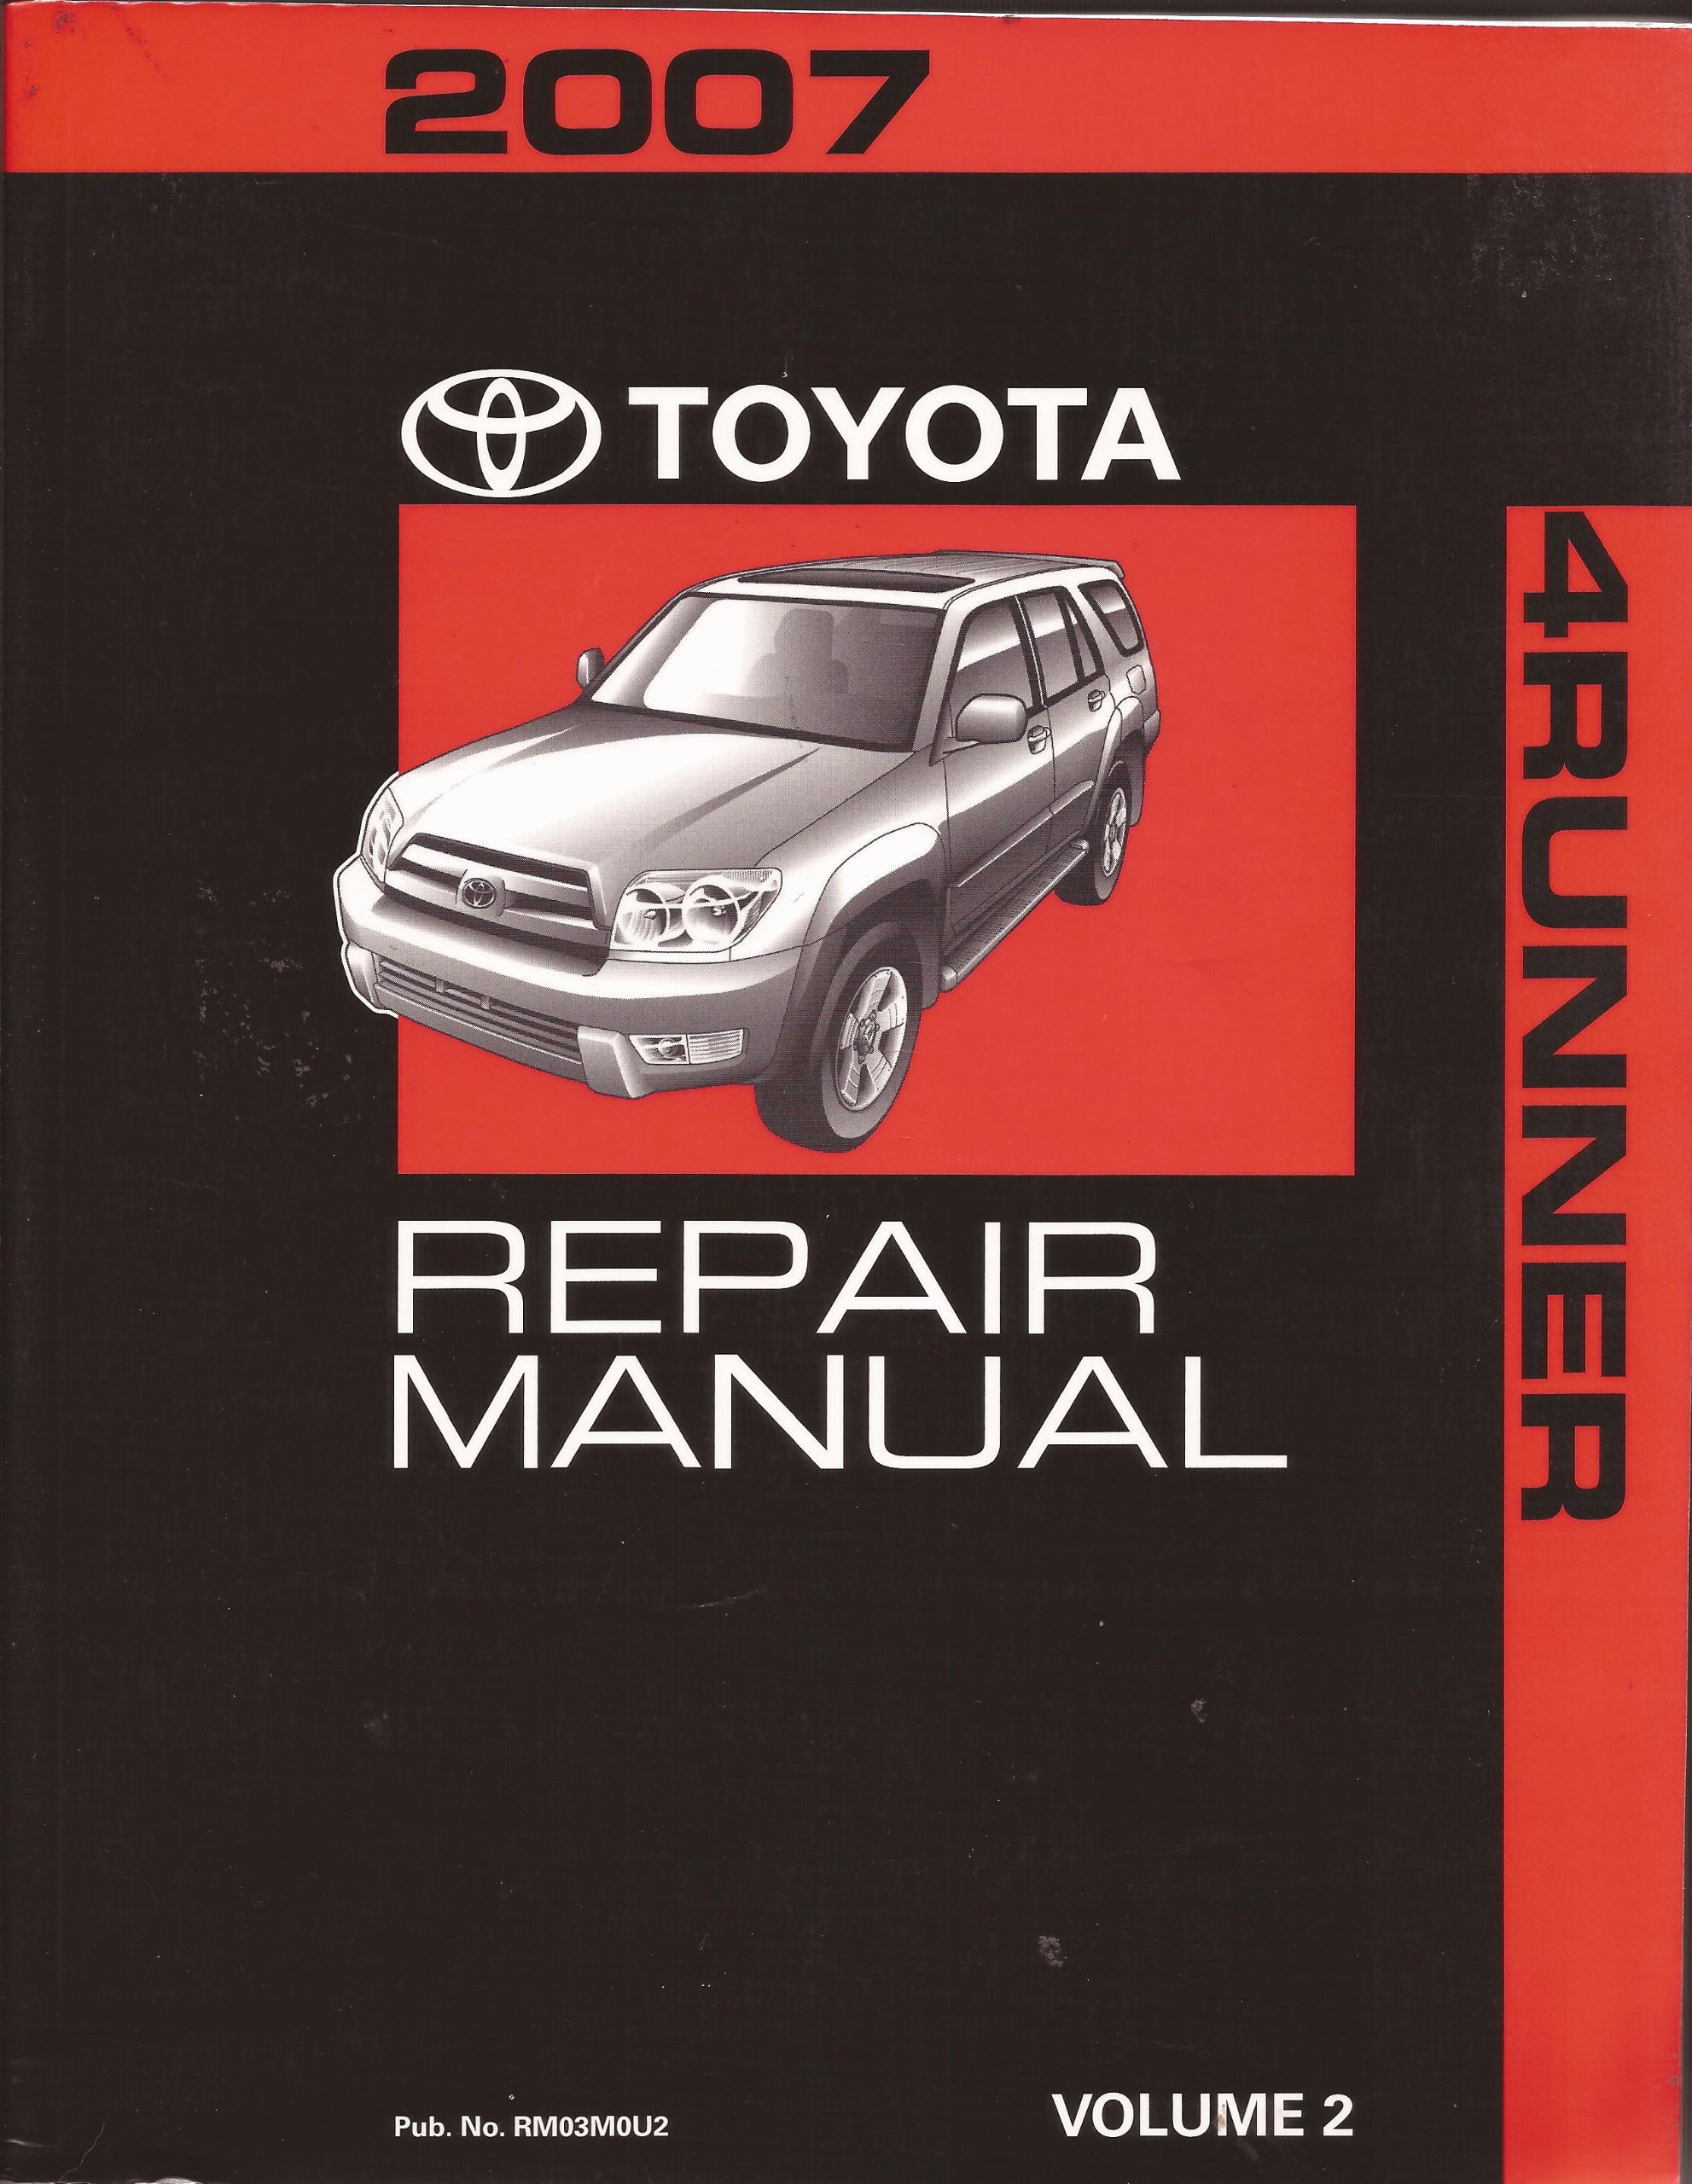 2007 4runner service manual basic instruction manual u2022 rh winwithwomen2012 com 2005 Toyota 4Runner Parts Diagram Toyota 4Runner Interior 2005